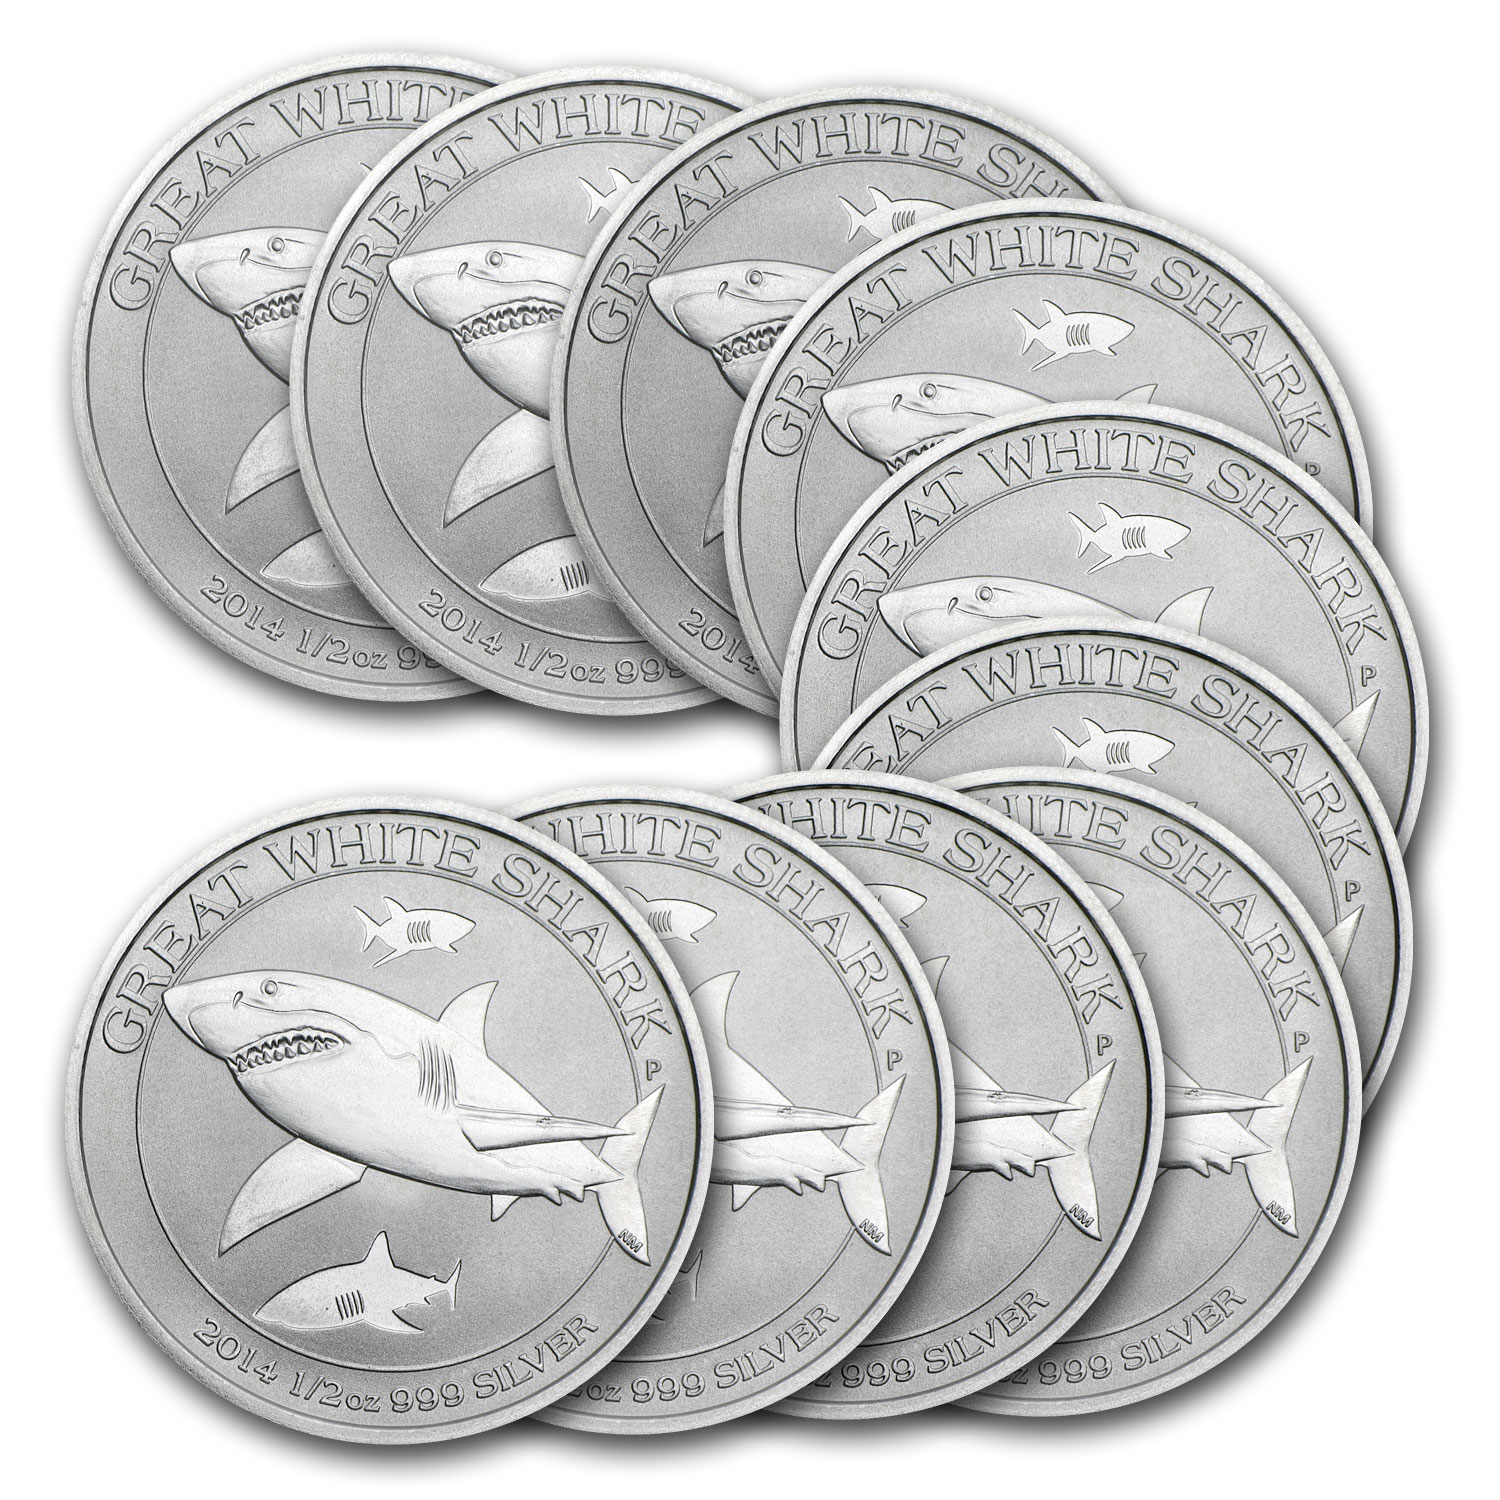 2014 Australia 1/2 oz Silver Great White Shark (Lot of 10)